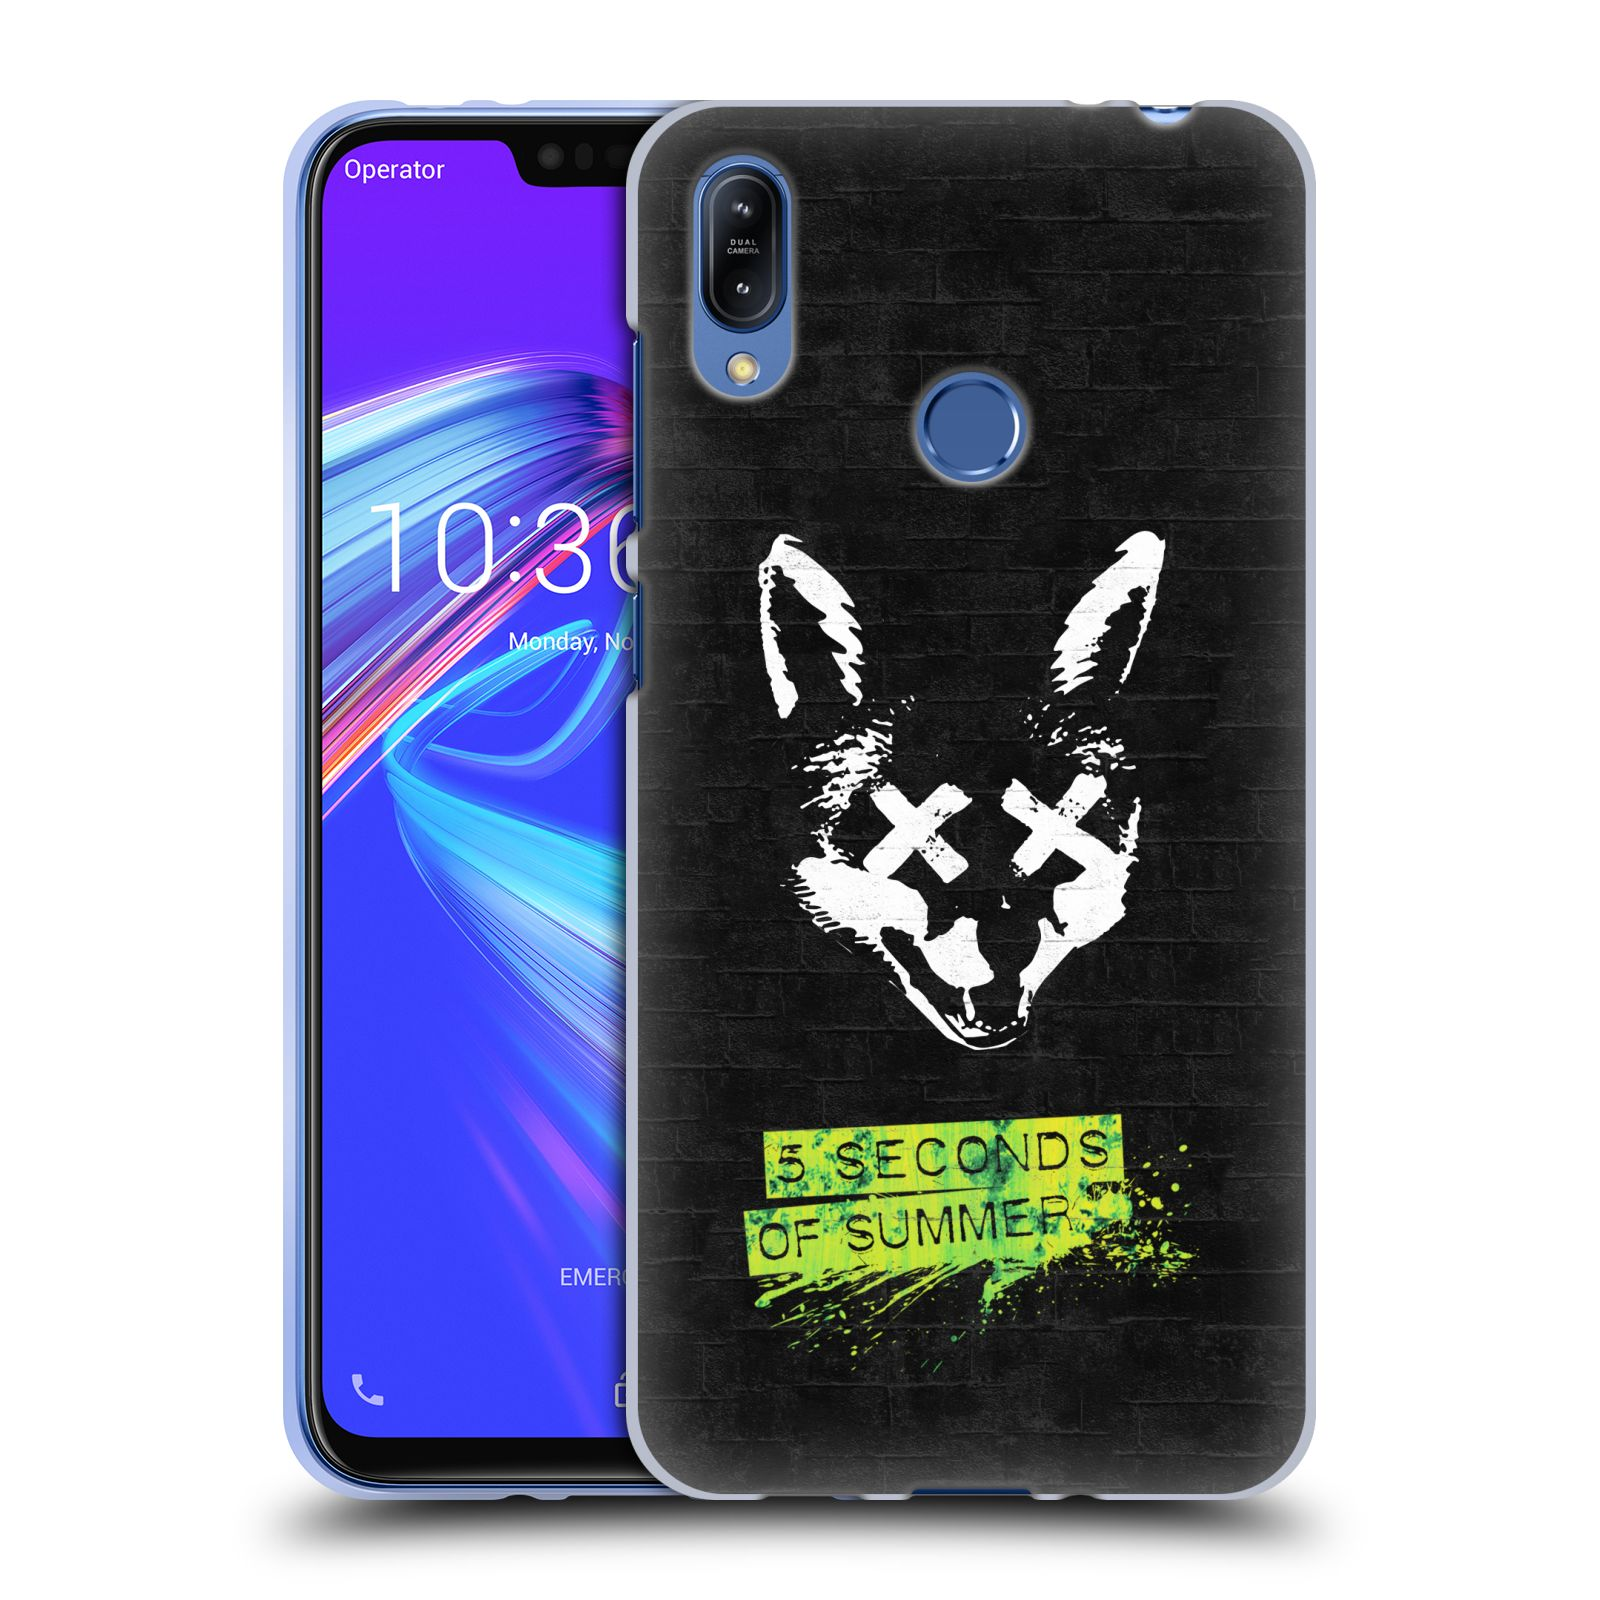 Silikonové pouzdro na mobil Asus Zenfone Max (M2) ZB633KL - Head Case - 5 Seconds of Summer - Fox